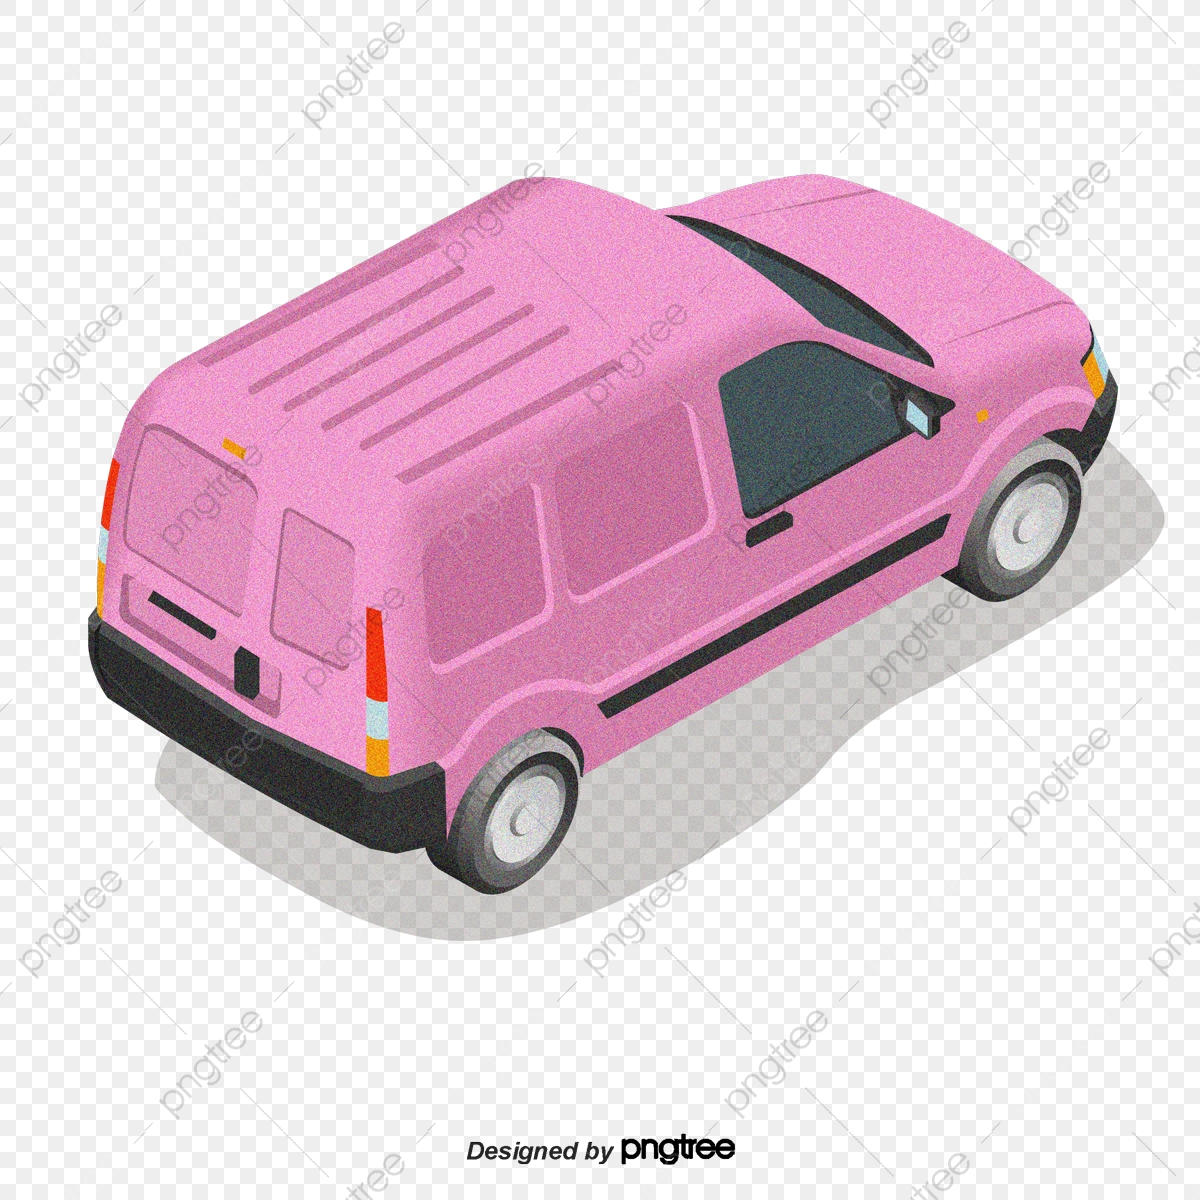 A Pink Vintage Car Vehicle Car Truck Png Transparent Clipart Image And Psd File For Free Download